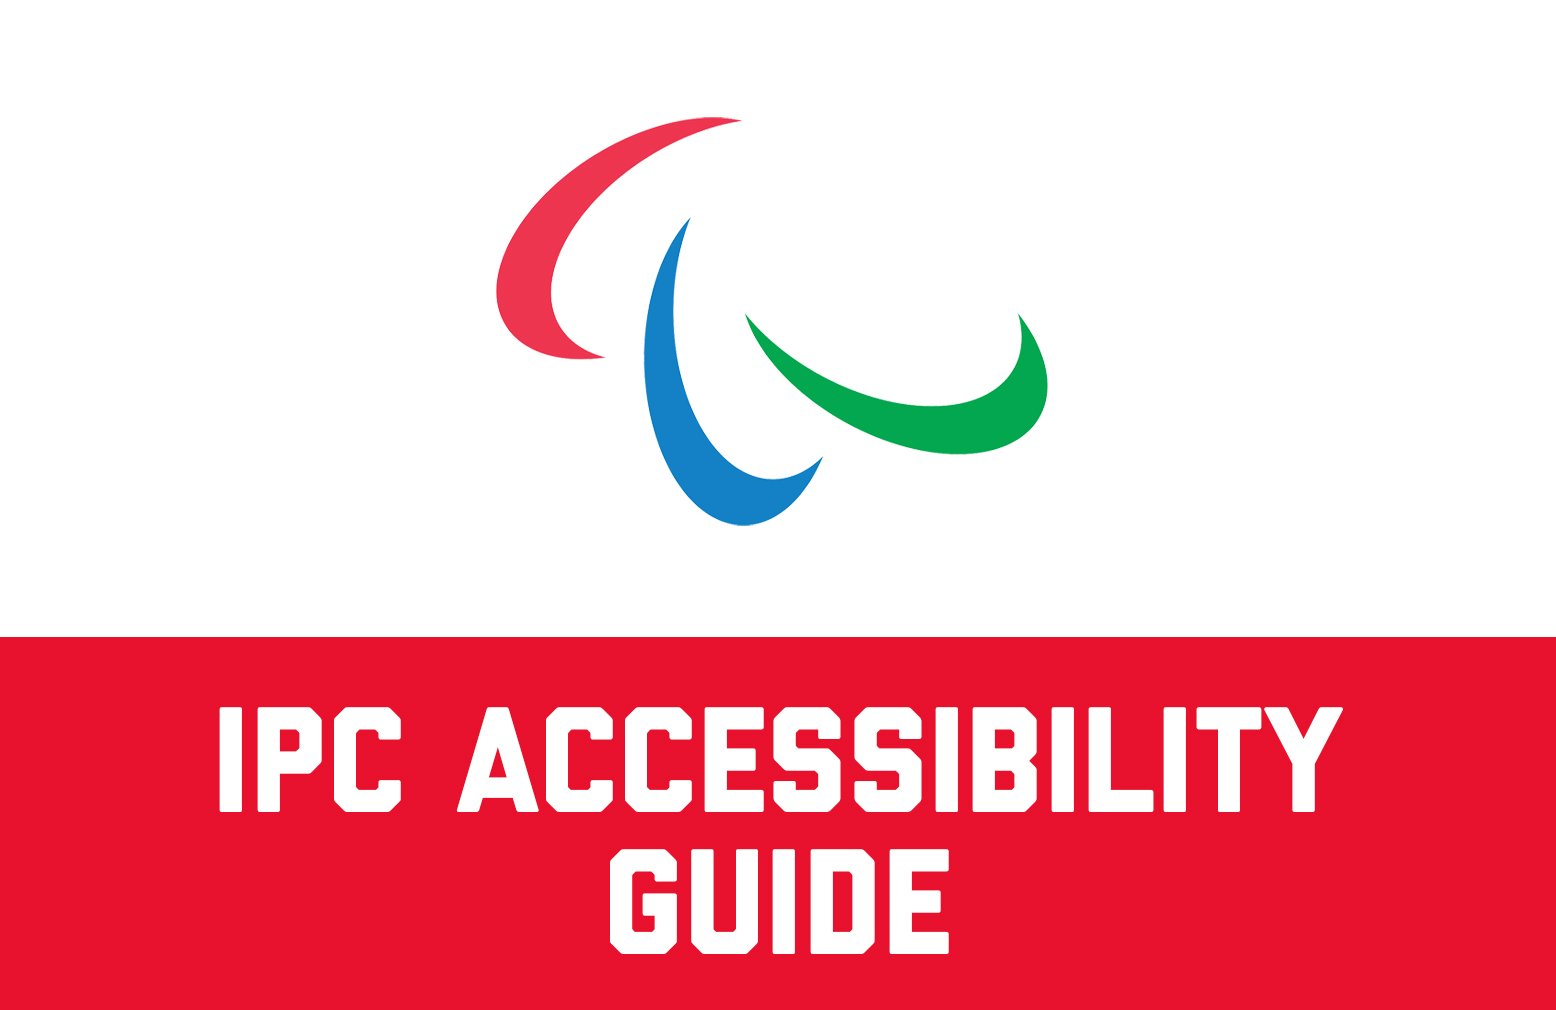 IPC Accessibility guidelines